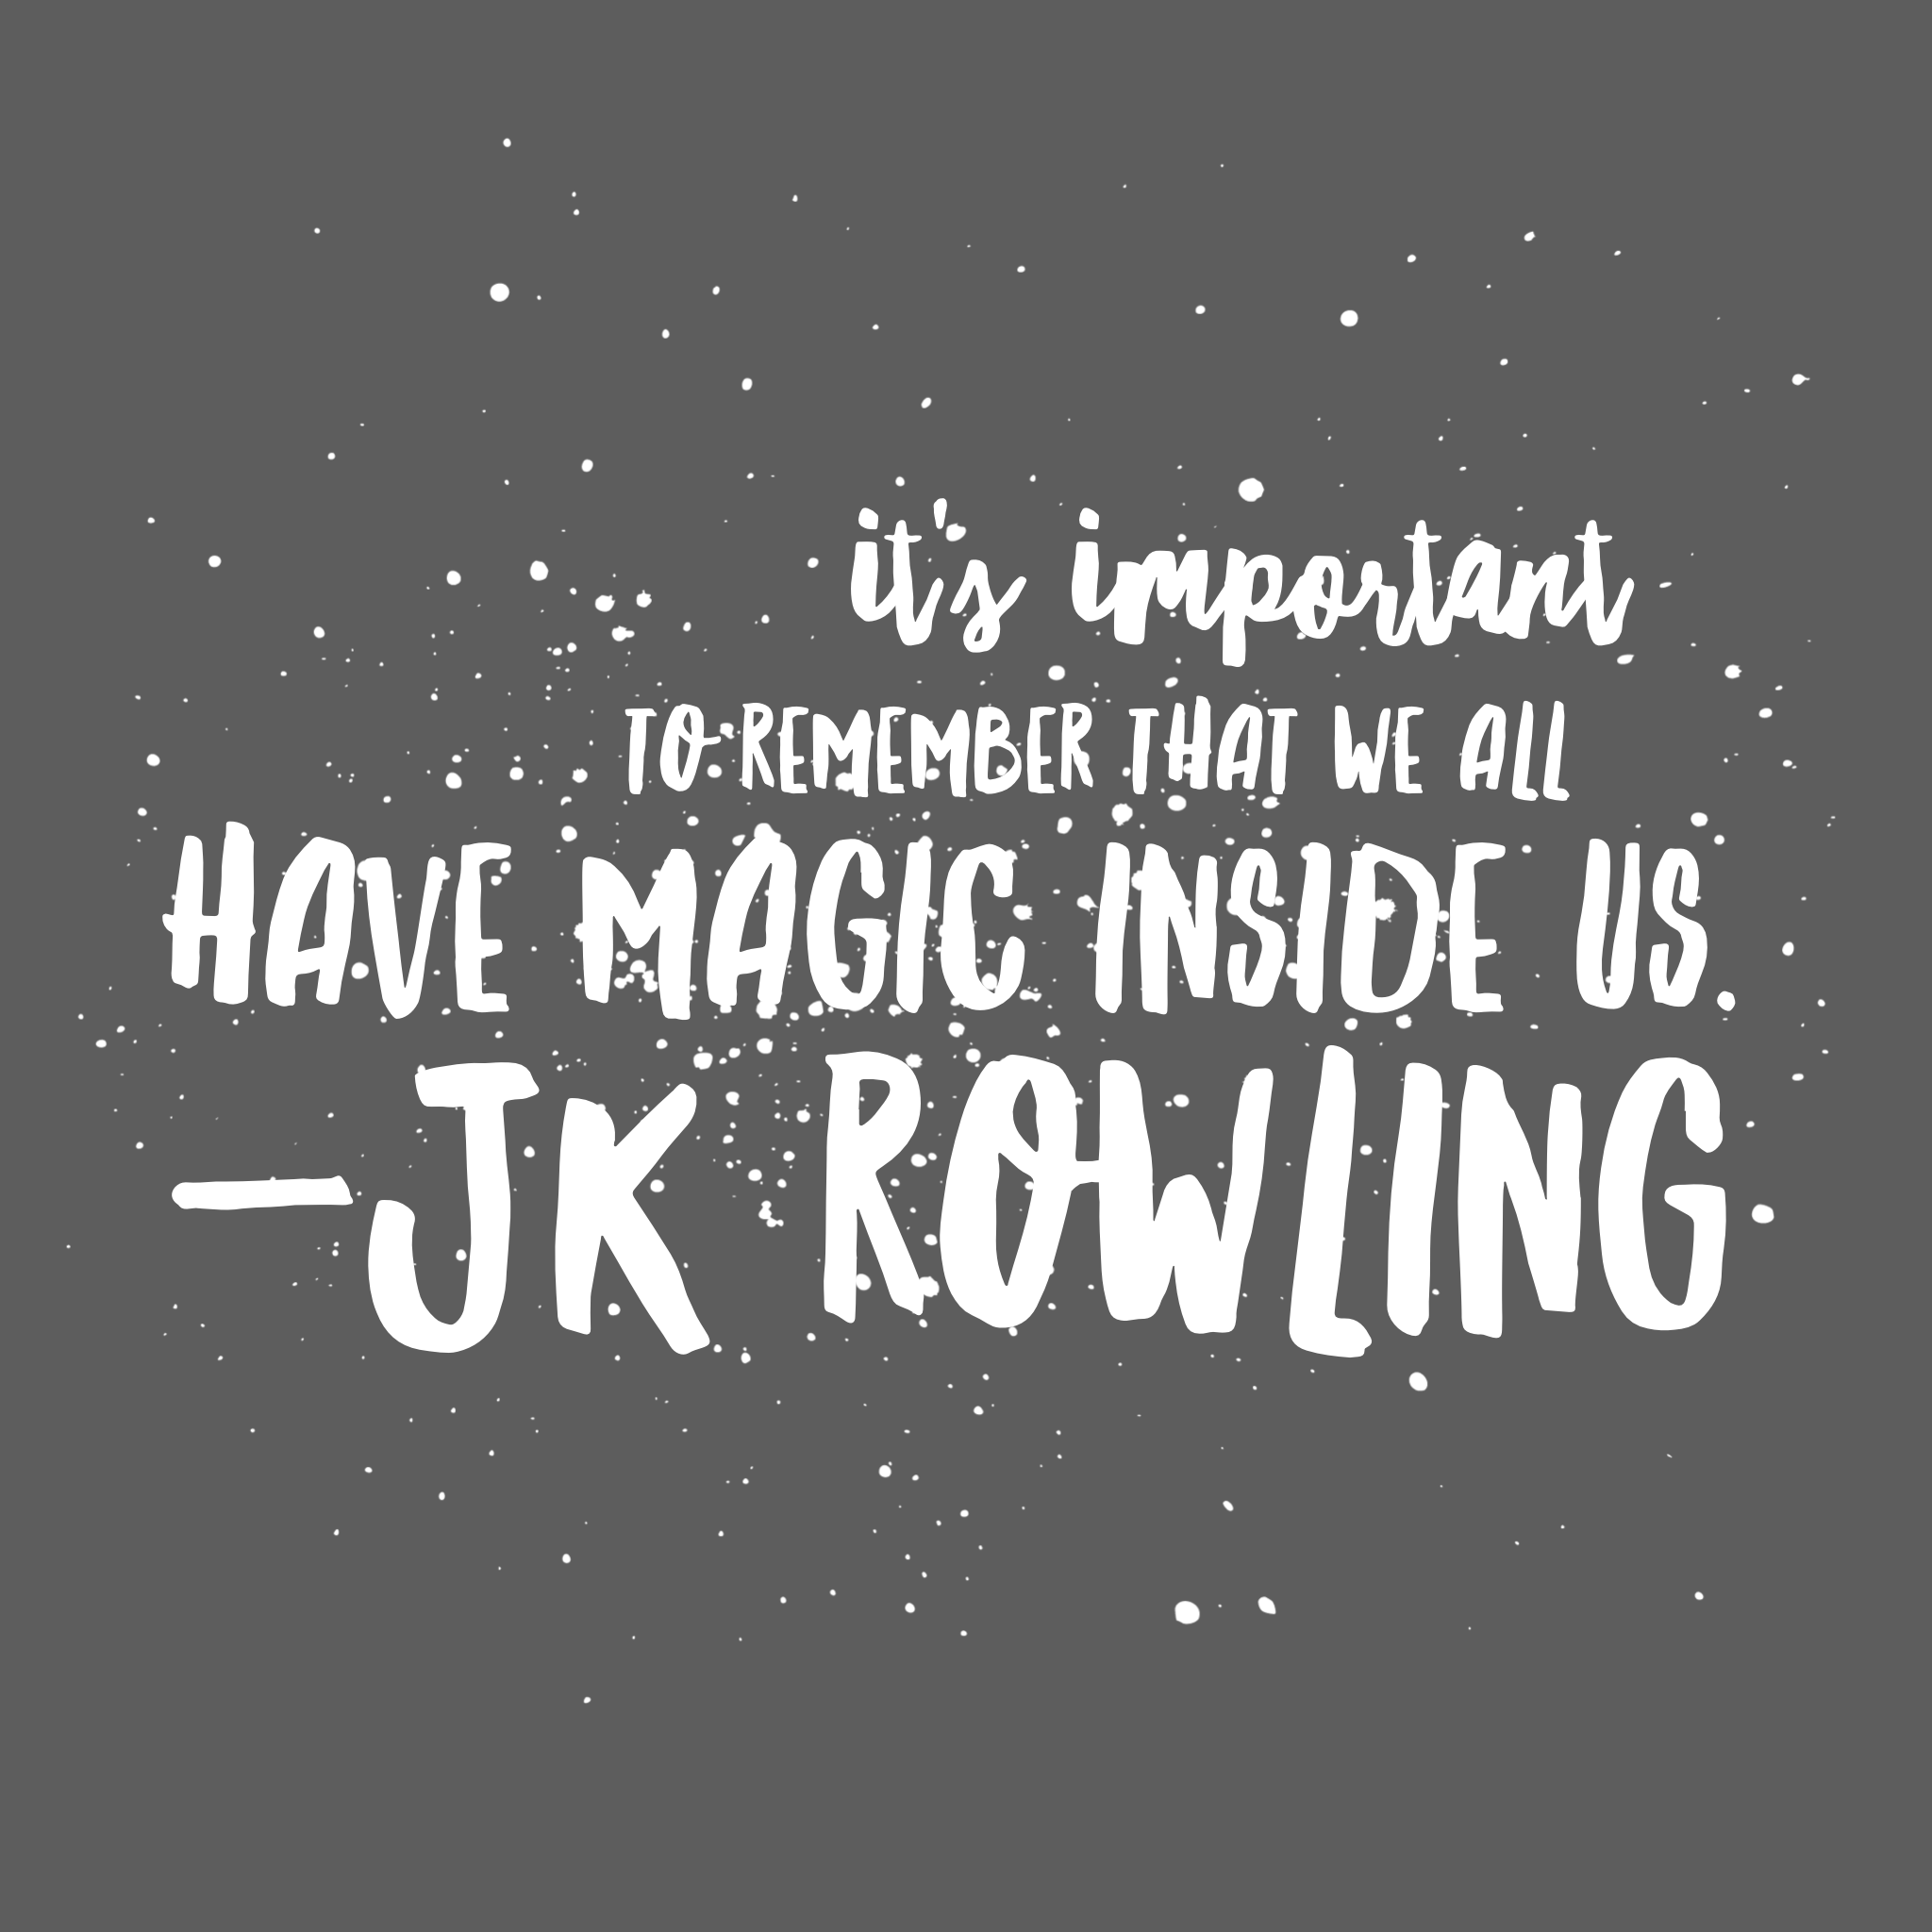 Quotes Harry Potter Create Your Next Video In 60 Seconds Or Less. Harry Potter